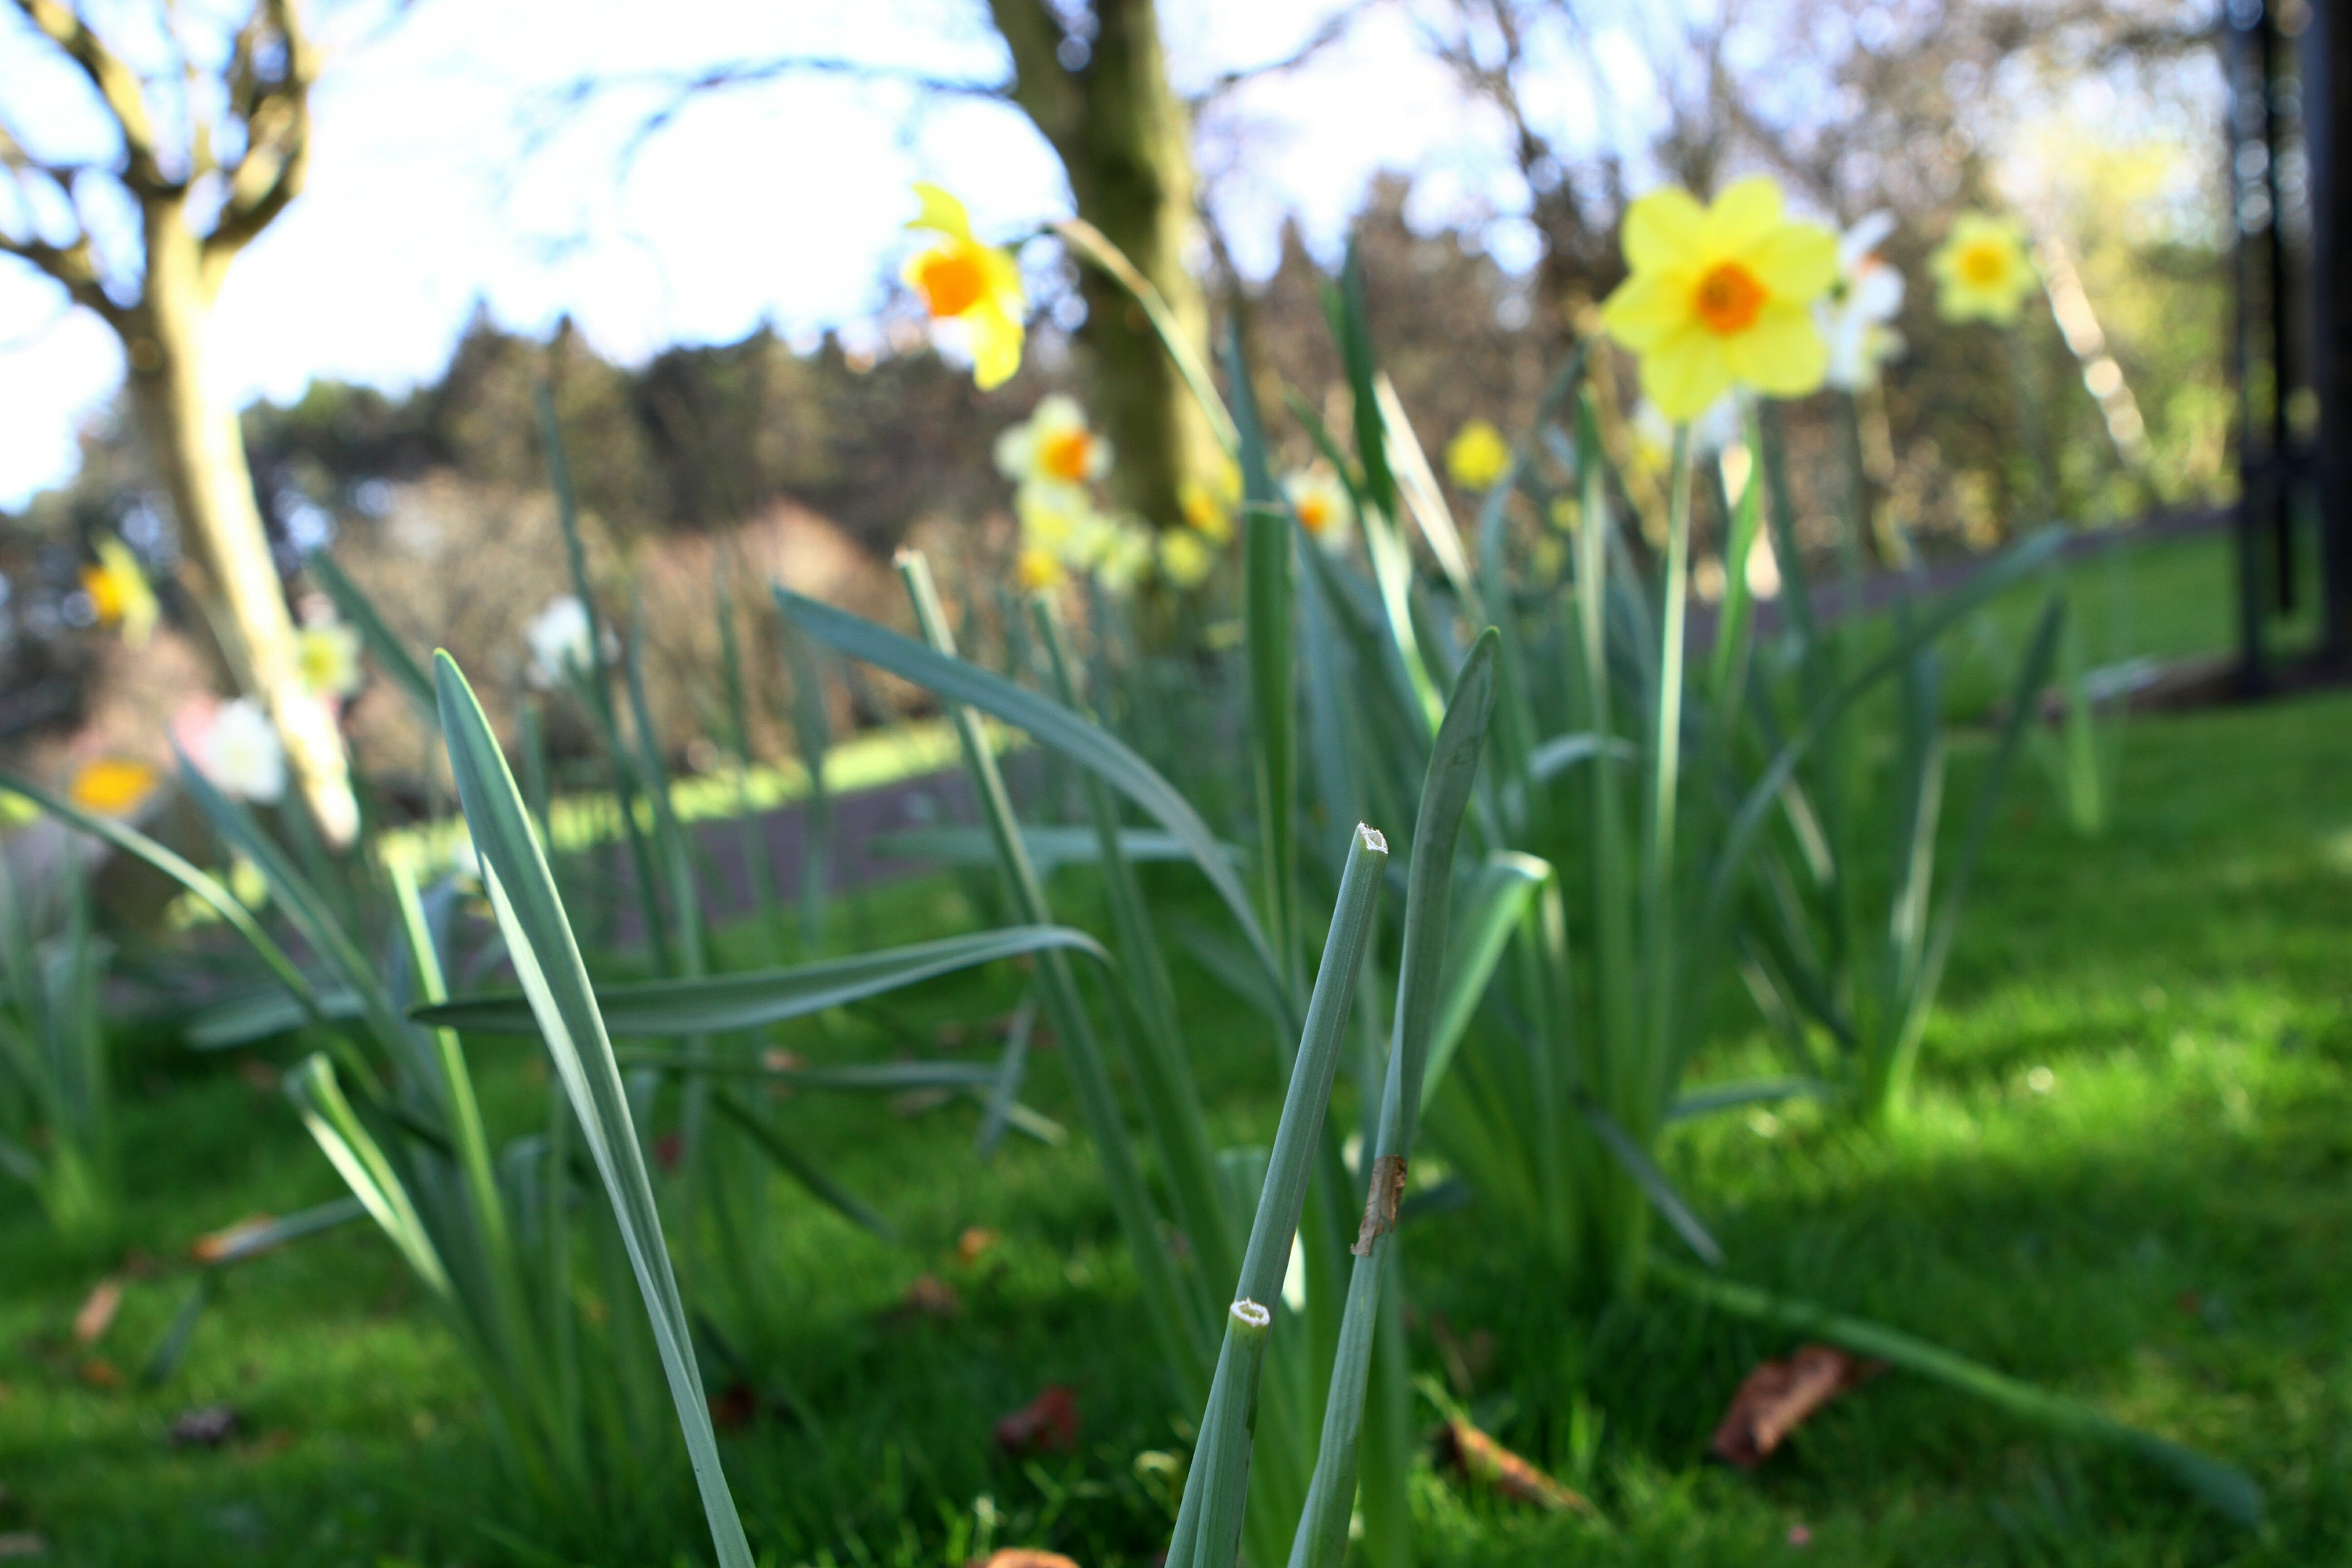 Students broke no law picking daffodils from Lade Braes for scientific study